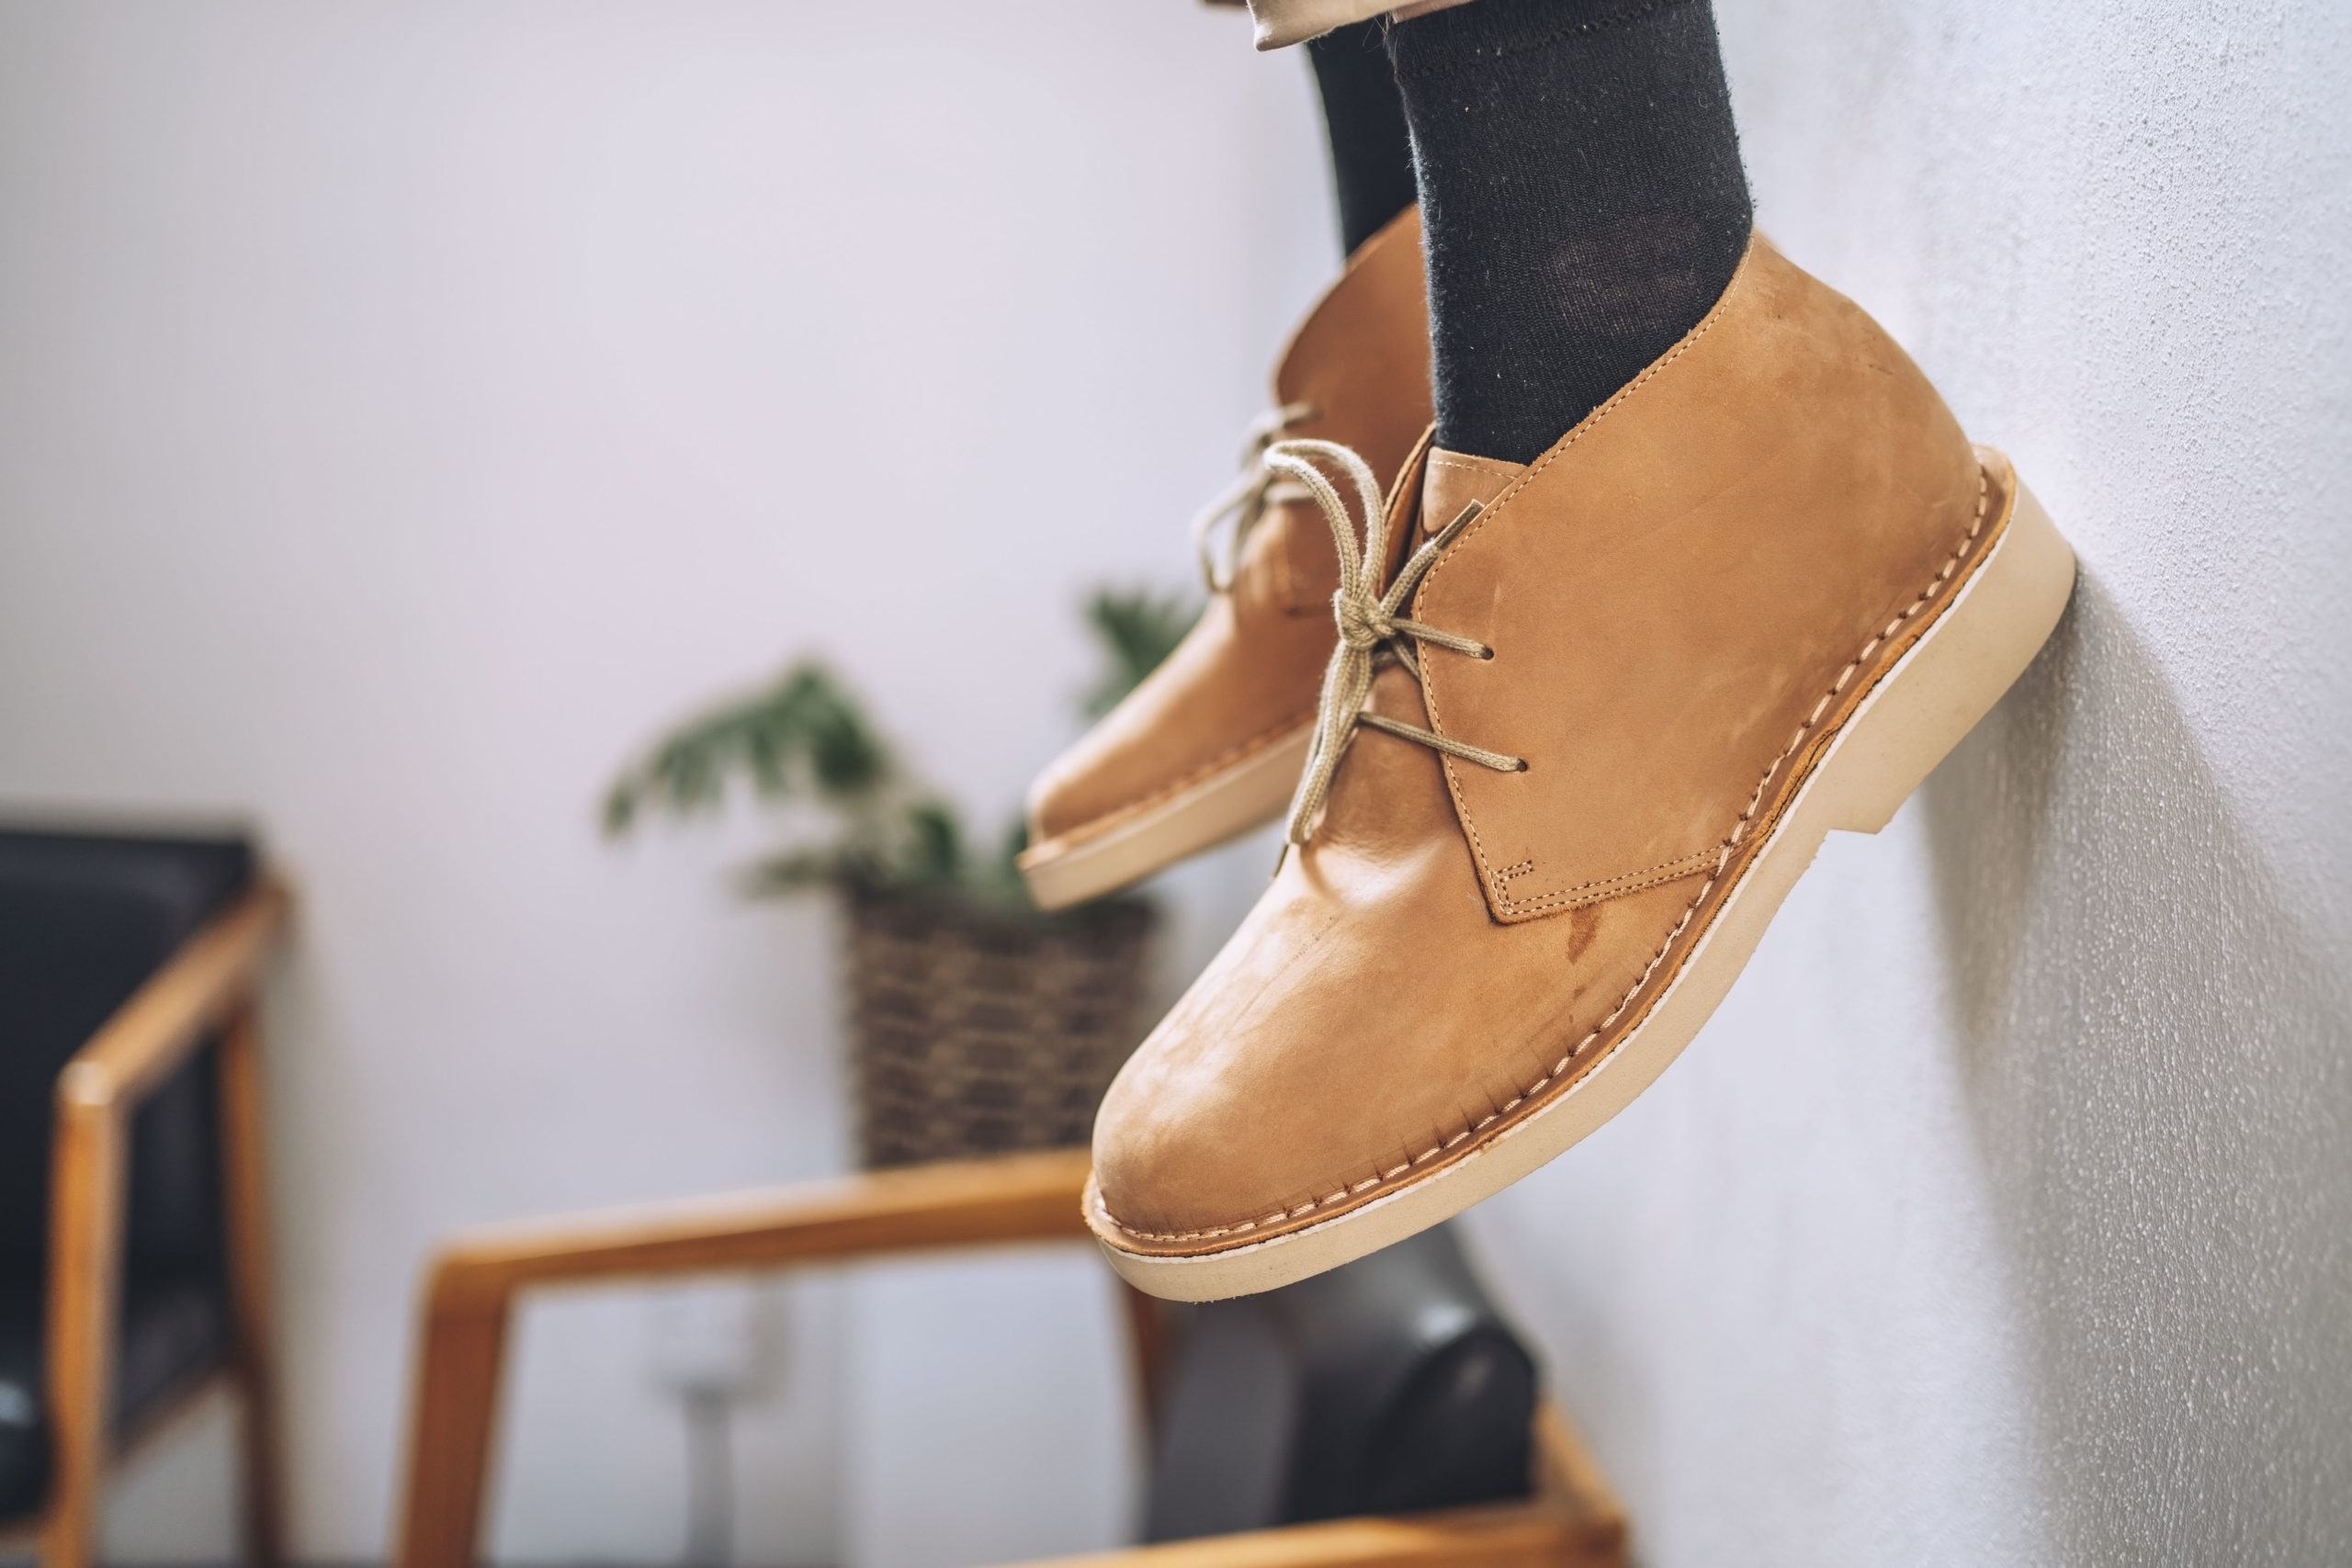 Leather boots with scuffs